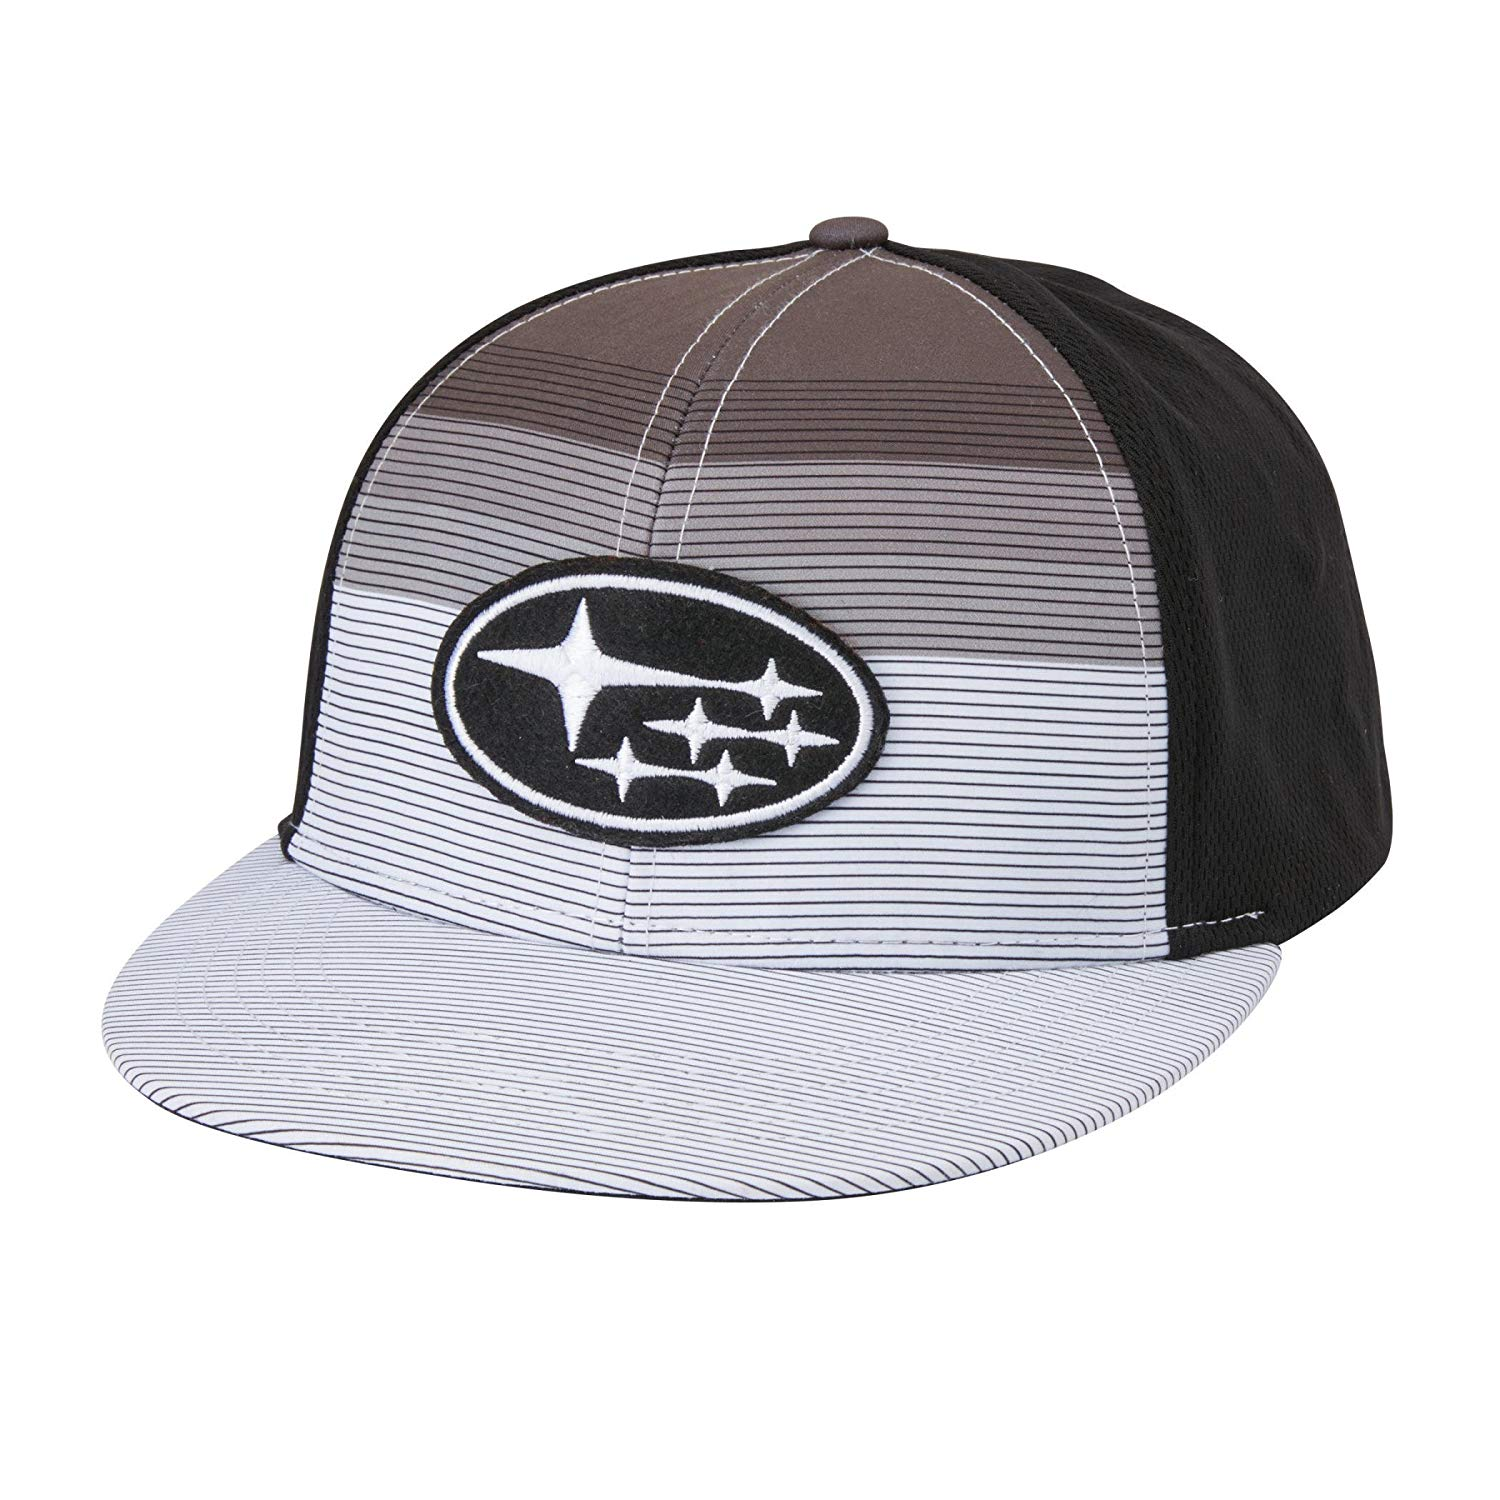 Get Quotations · Subaru Black and White Flatbill Cap Legacy Forester  Impreza Outback STI WRX Hat 60eec719bf30